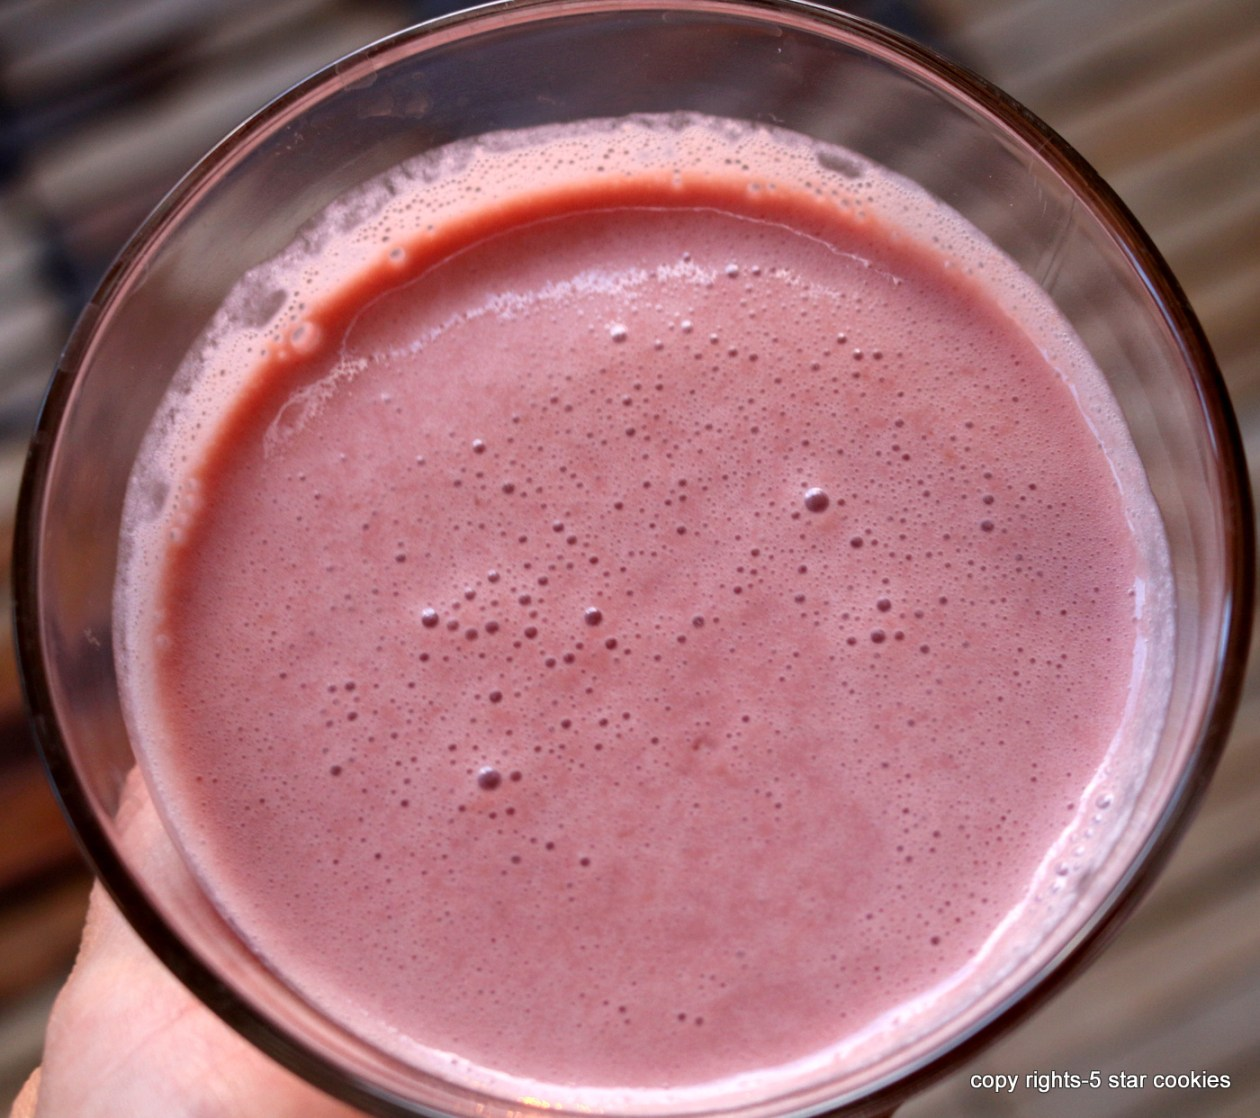 Pomegranate smoothie from the best food blog 5starcookies-blend all ingredients